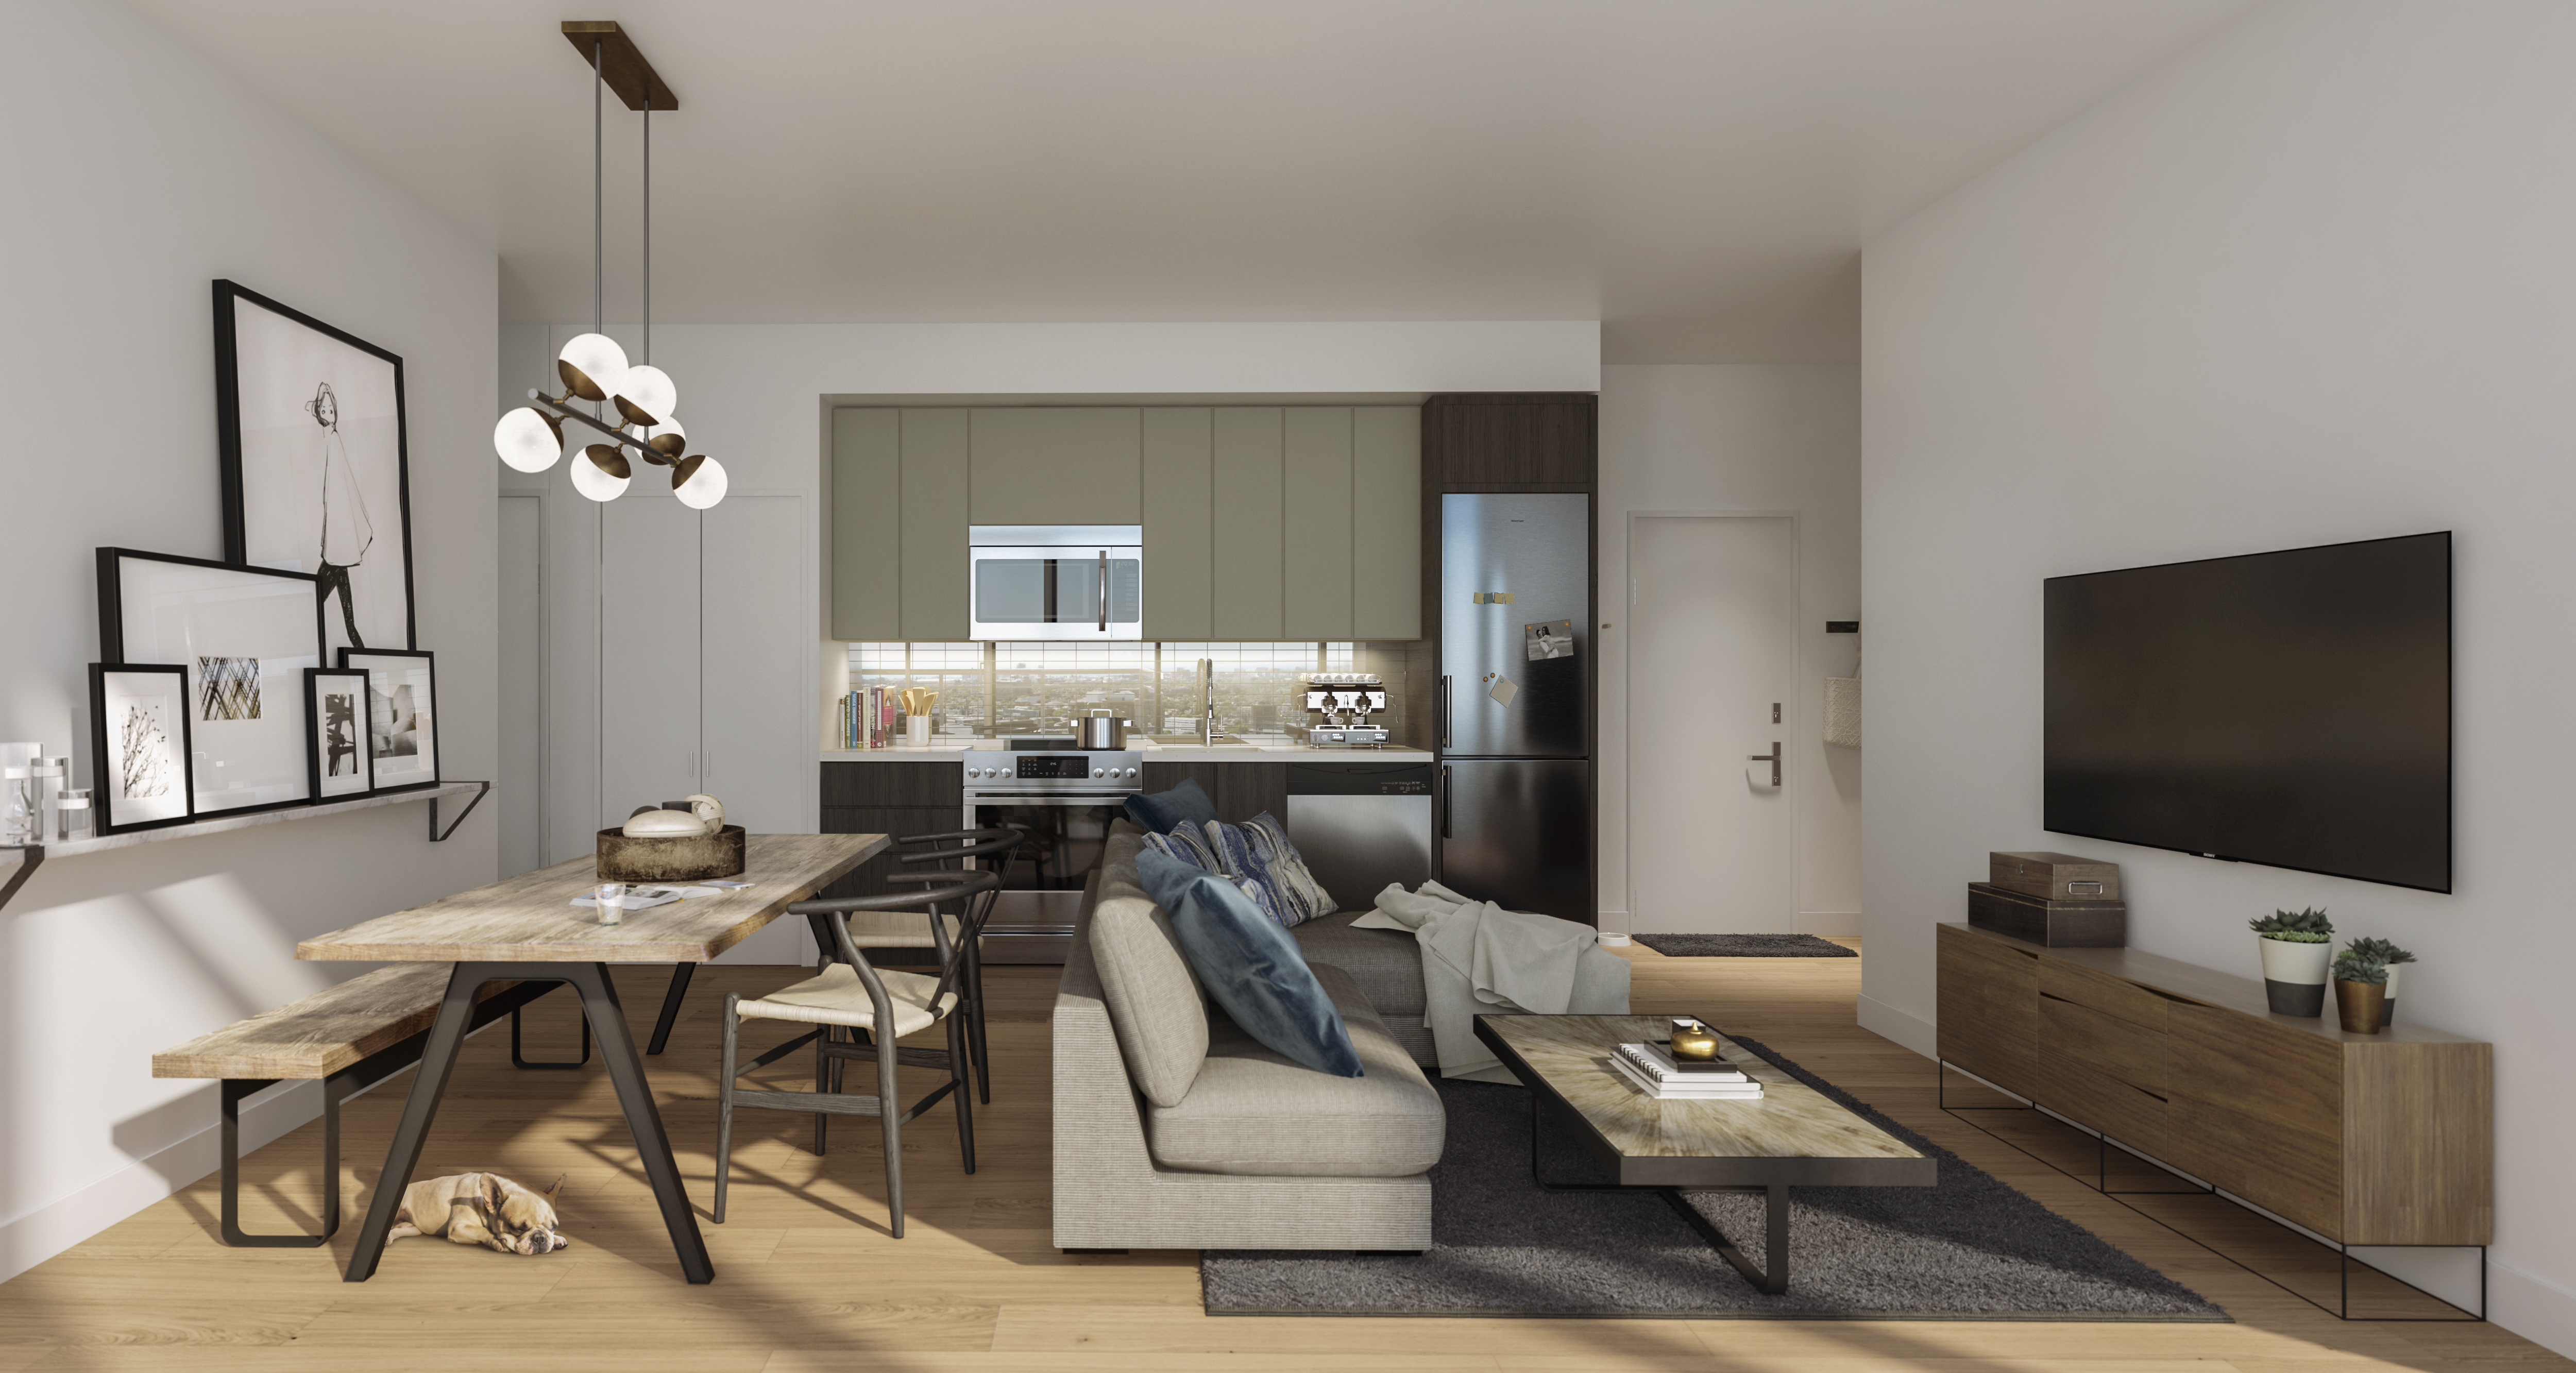 Home Power and Adelaide Amenities7